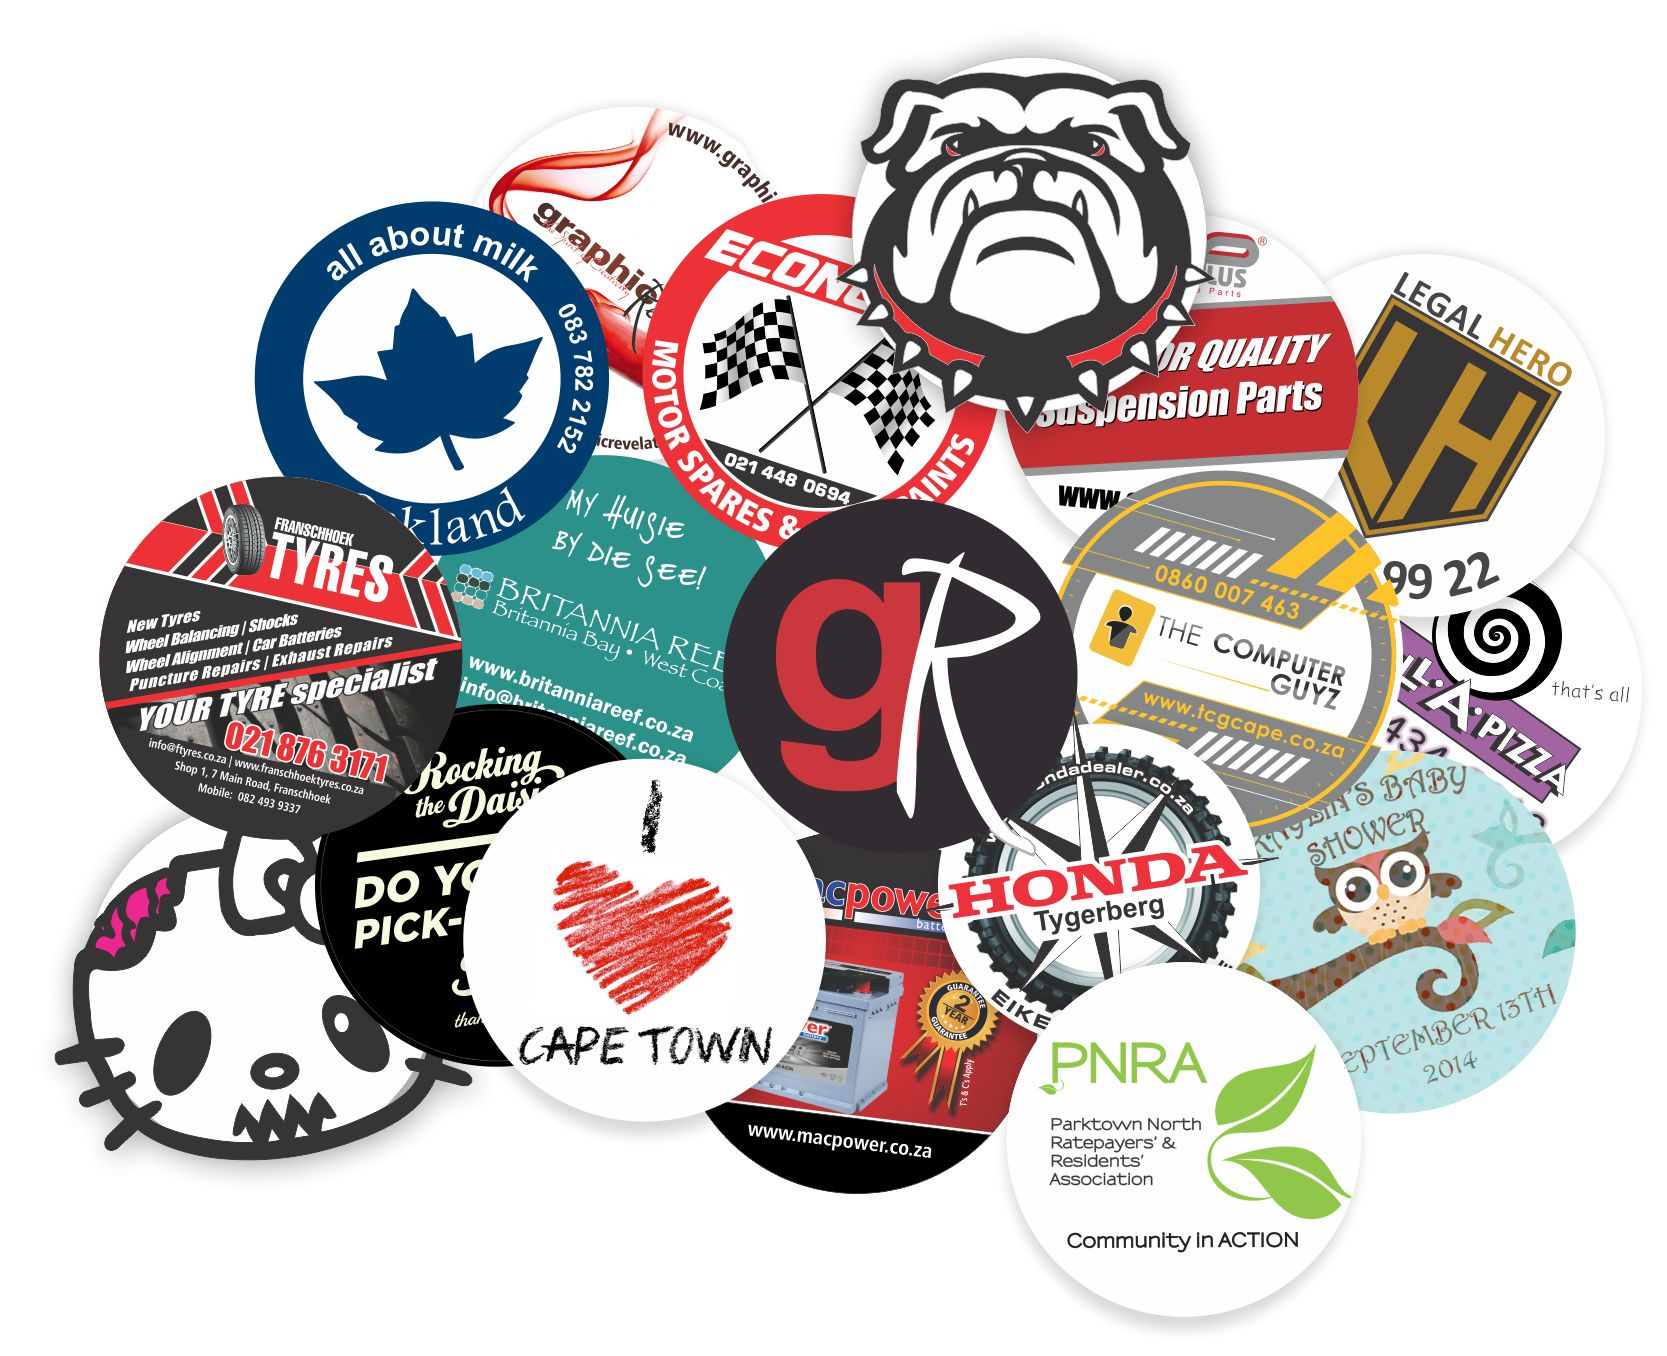 License disk stickers are a great way to promote your business or cause at our amazingly low price of just r1 60 each you can afford to get your name out